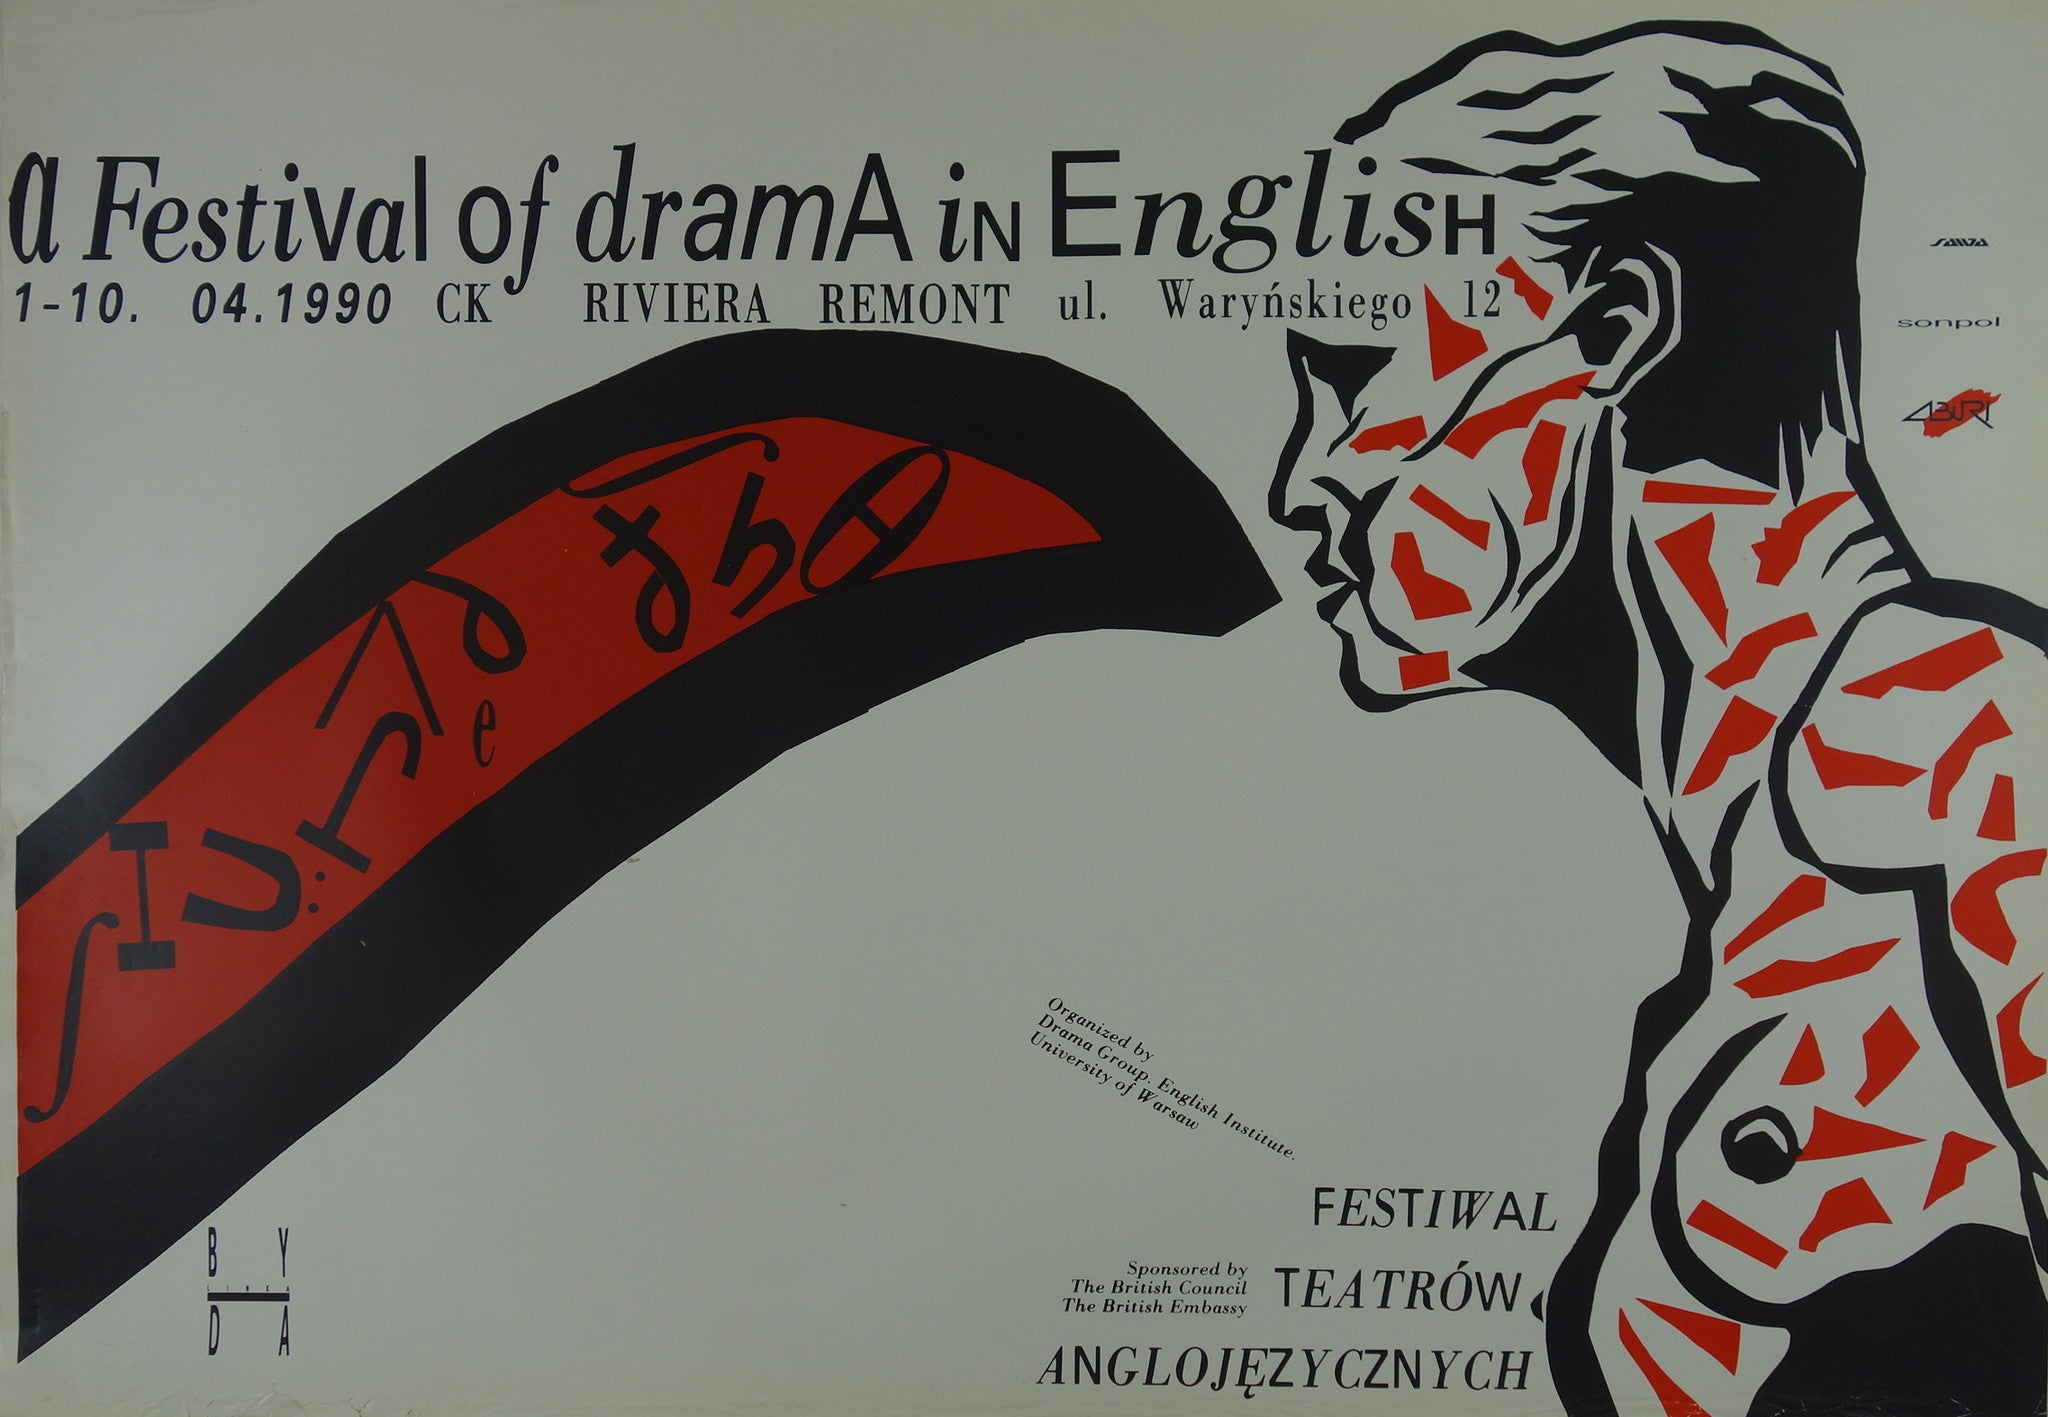 A Festival of Drama in English